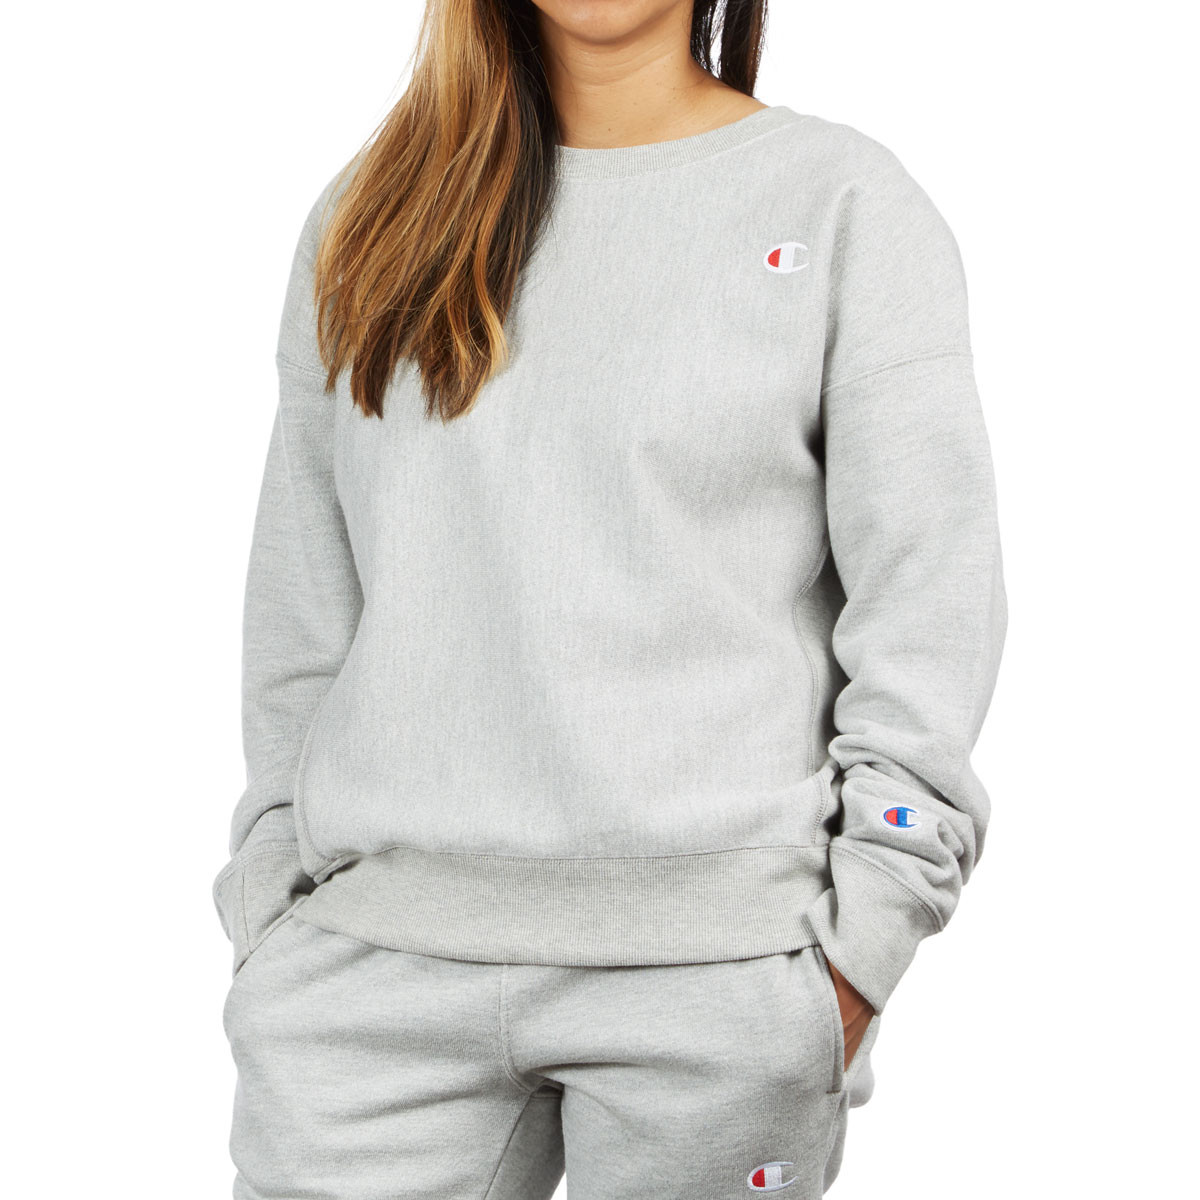 Champion Womens Reverse Weave Crew Sweatshirt - Oxford Grey 1379a53806